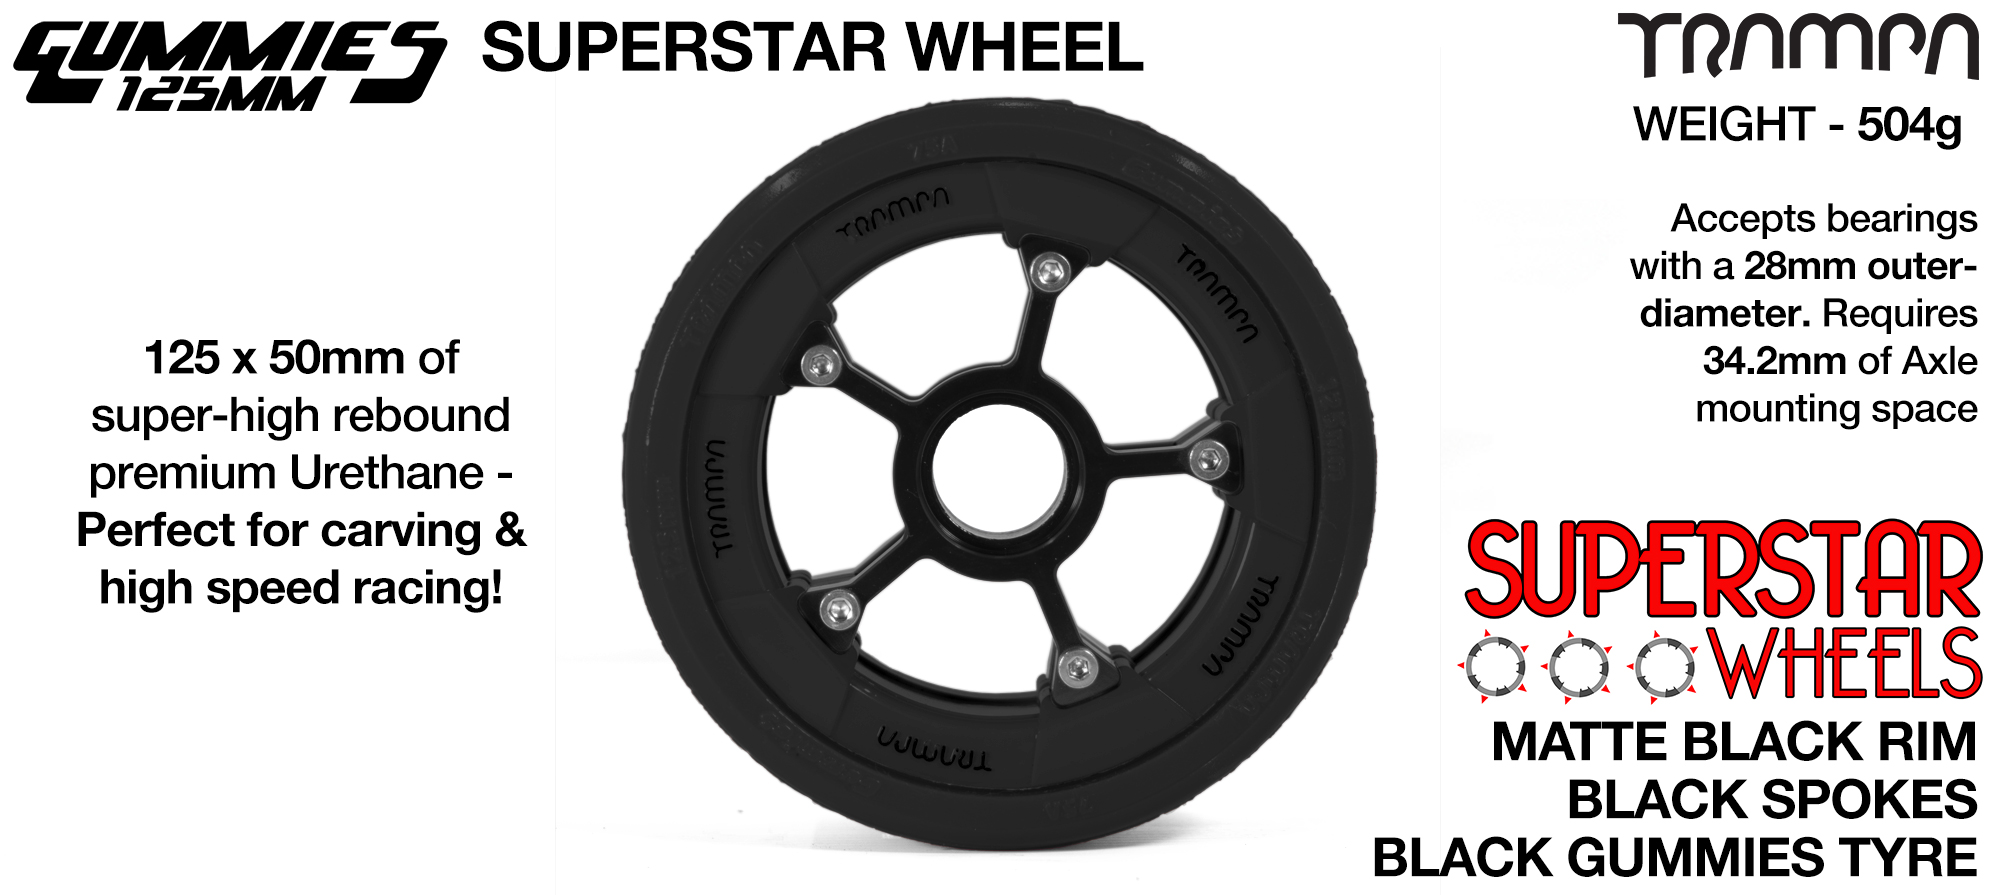 Superstar 125mm Longboard Wheels - Matt BLACK SUPERSTAR Rim with BLACK Anodised Spokes & TTRAMPA BLACK Gummies 125mm Longboard Wheel Tyre